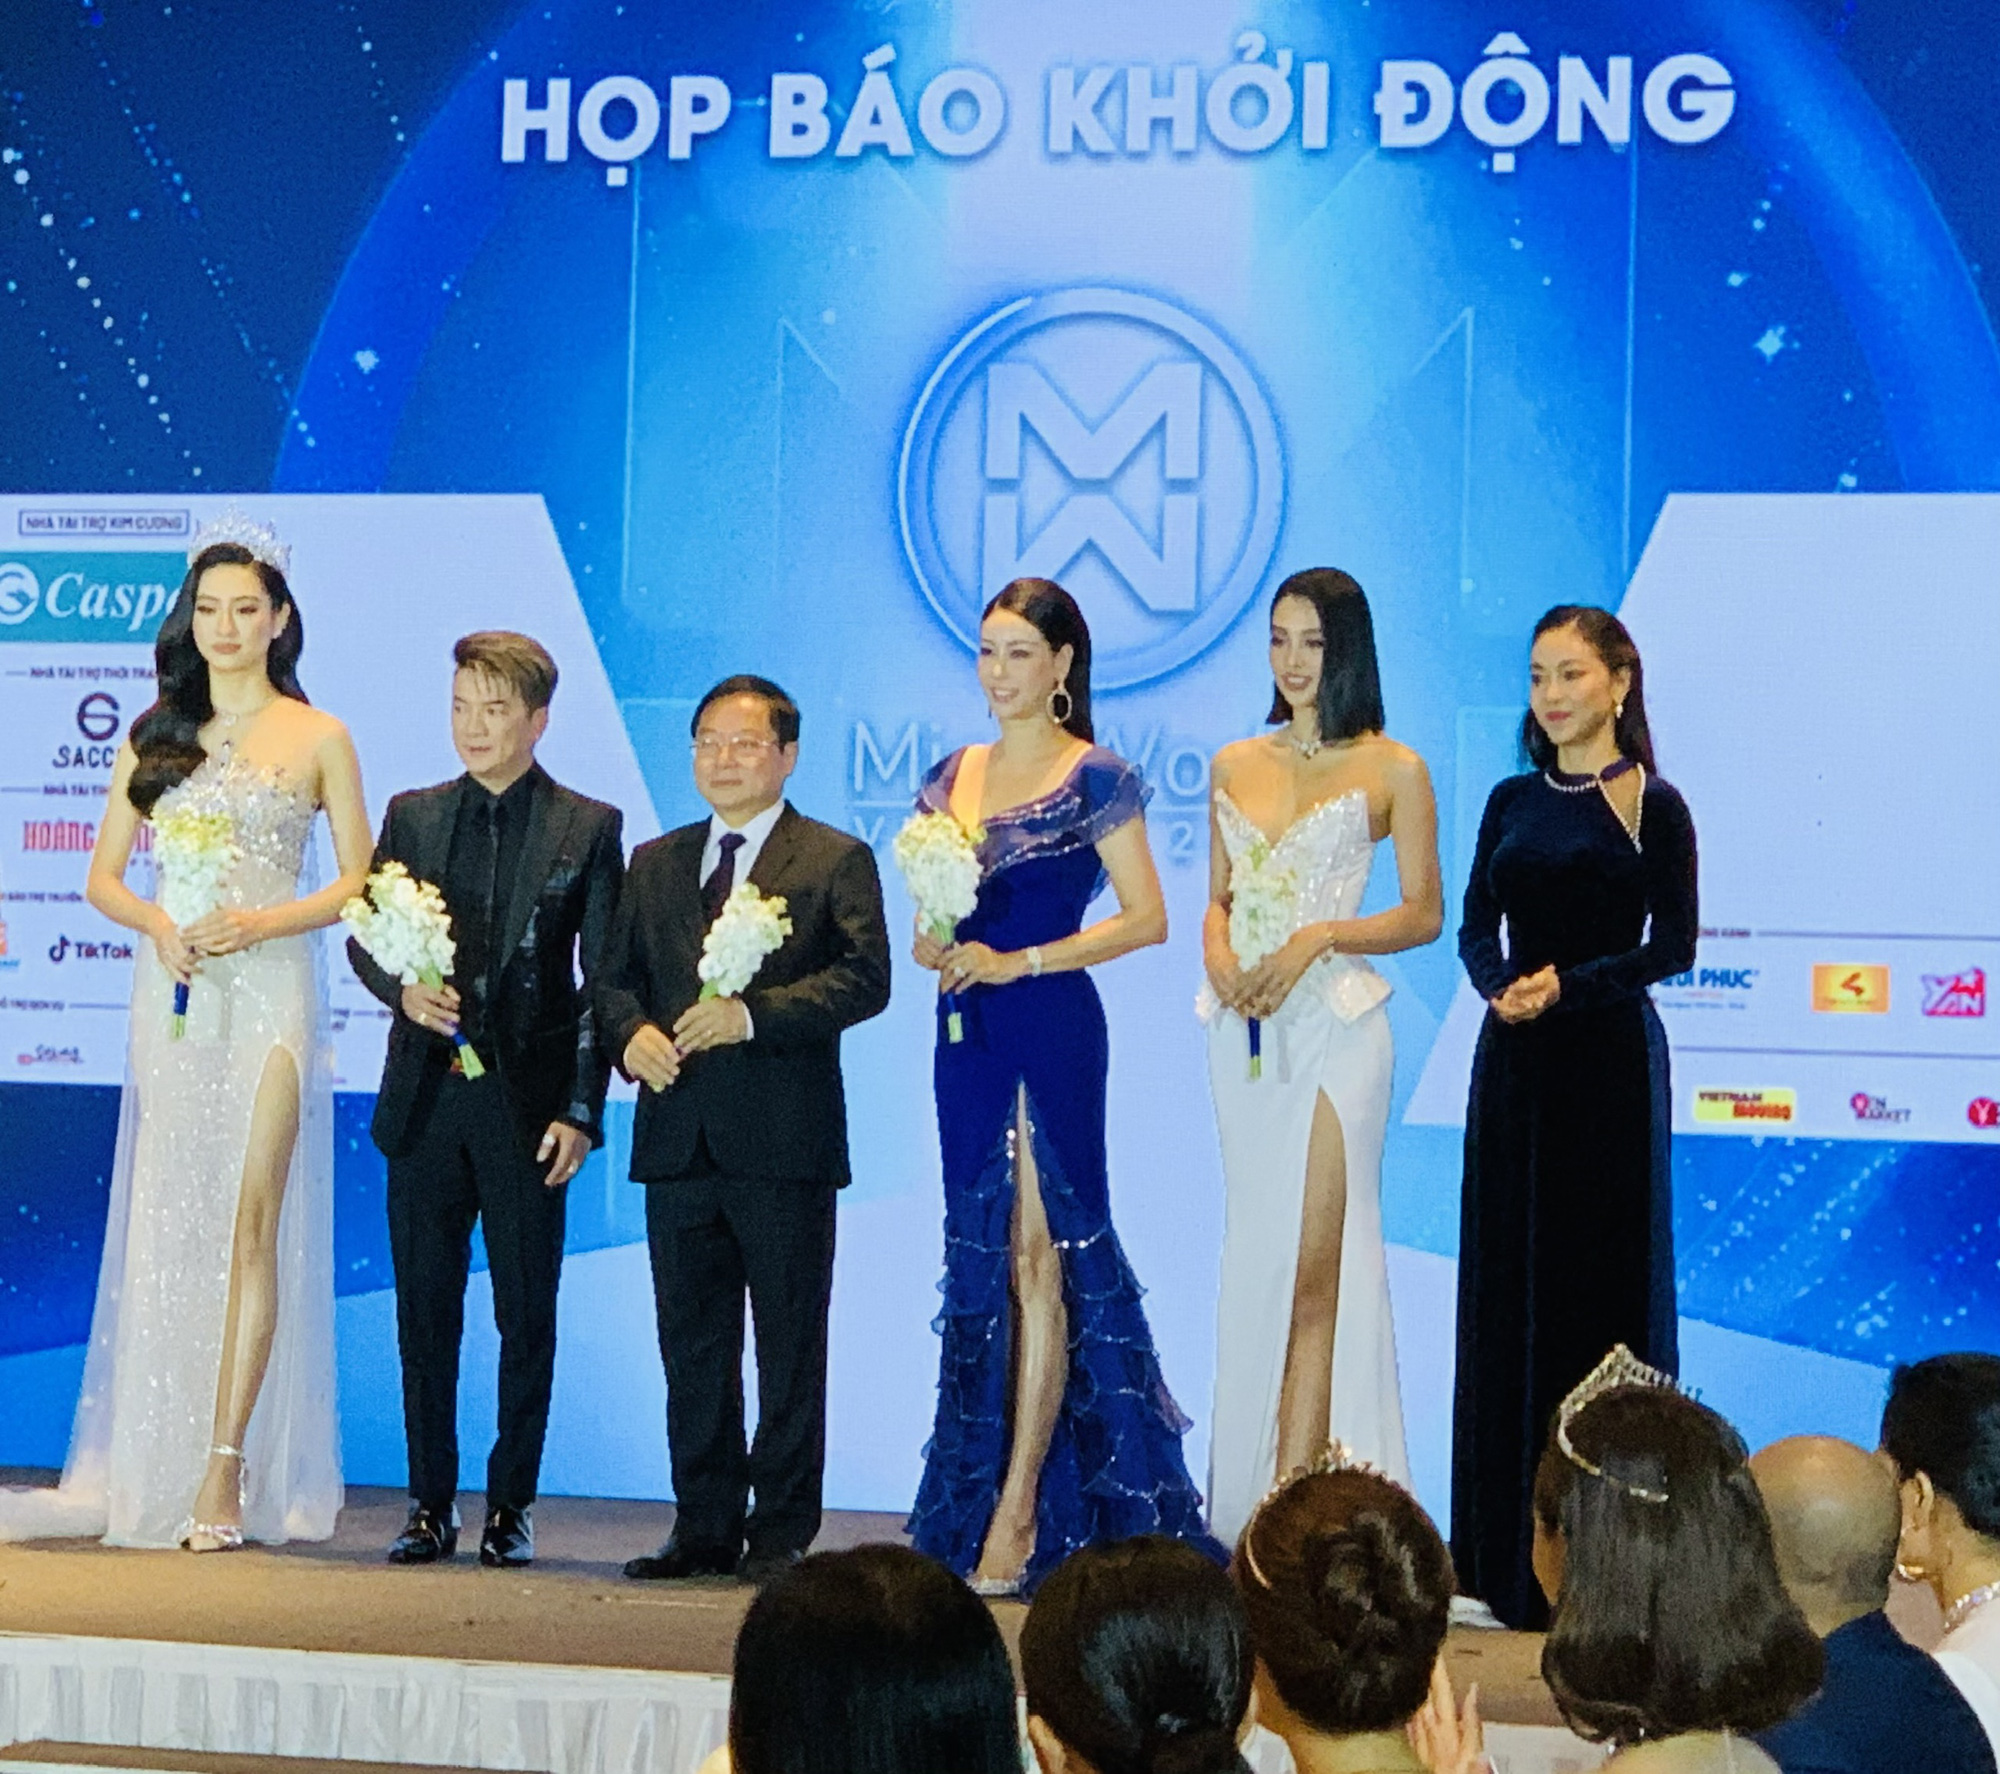 Judges of Miss World Vietnam 2021 are introduced at the beauty contest's press conference in Ho Chi Minh City, March 31, 2021. Photo: Phuong Nam / Tuoi Tre